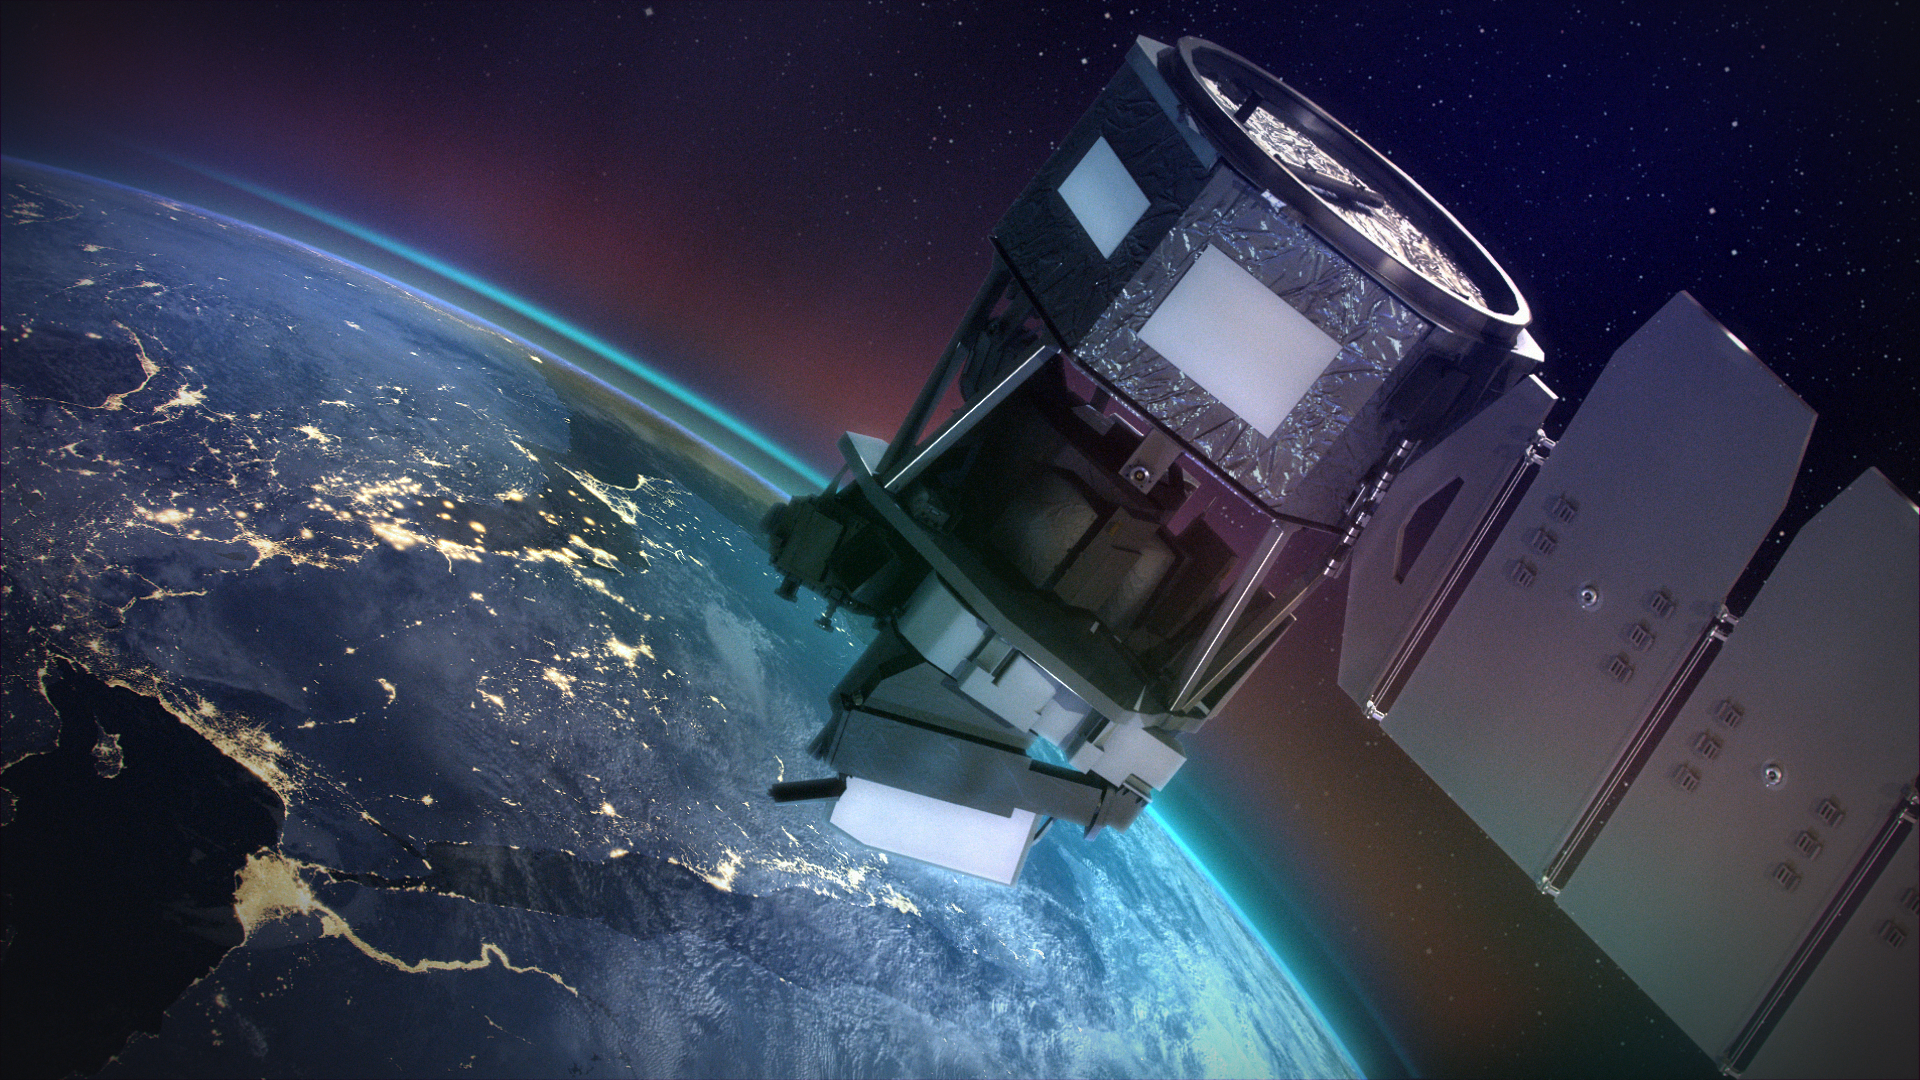 ICON, GOLD Teaming Up To Explore Earth's Interface to Space   NASA